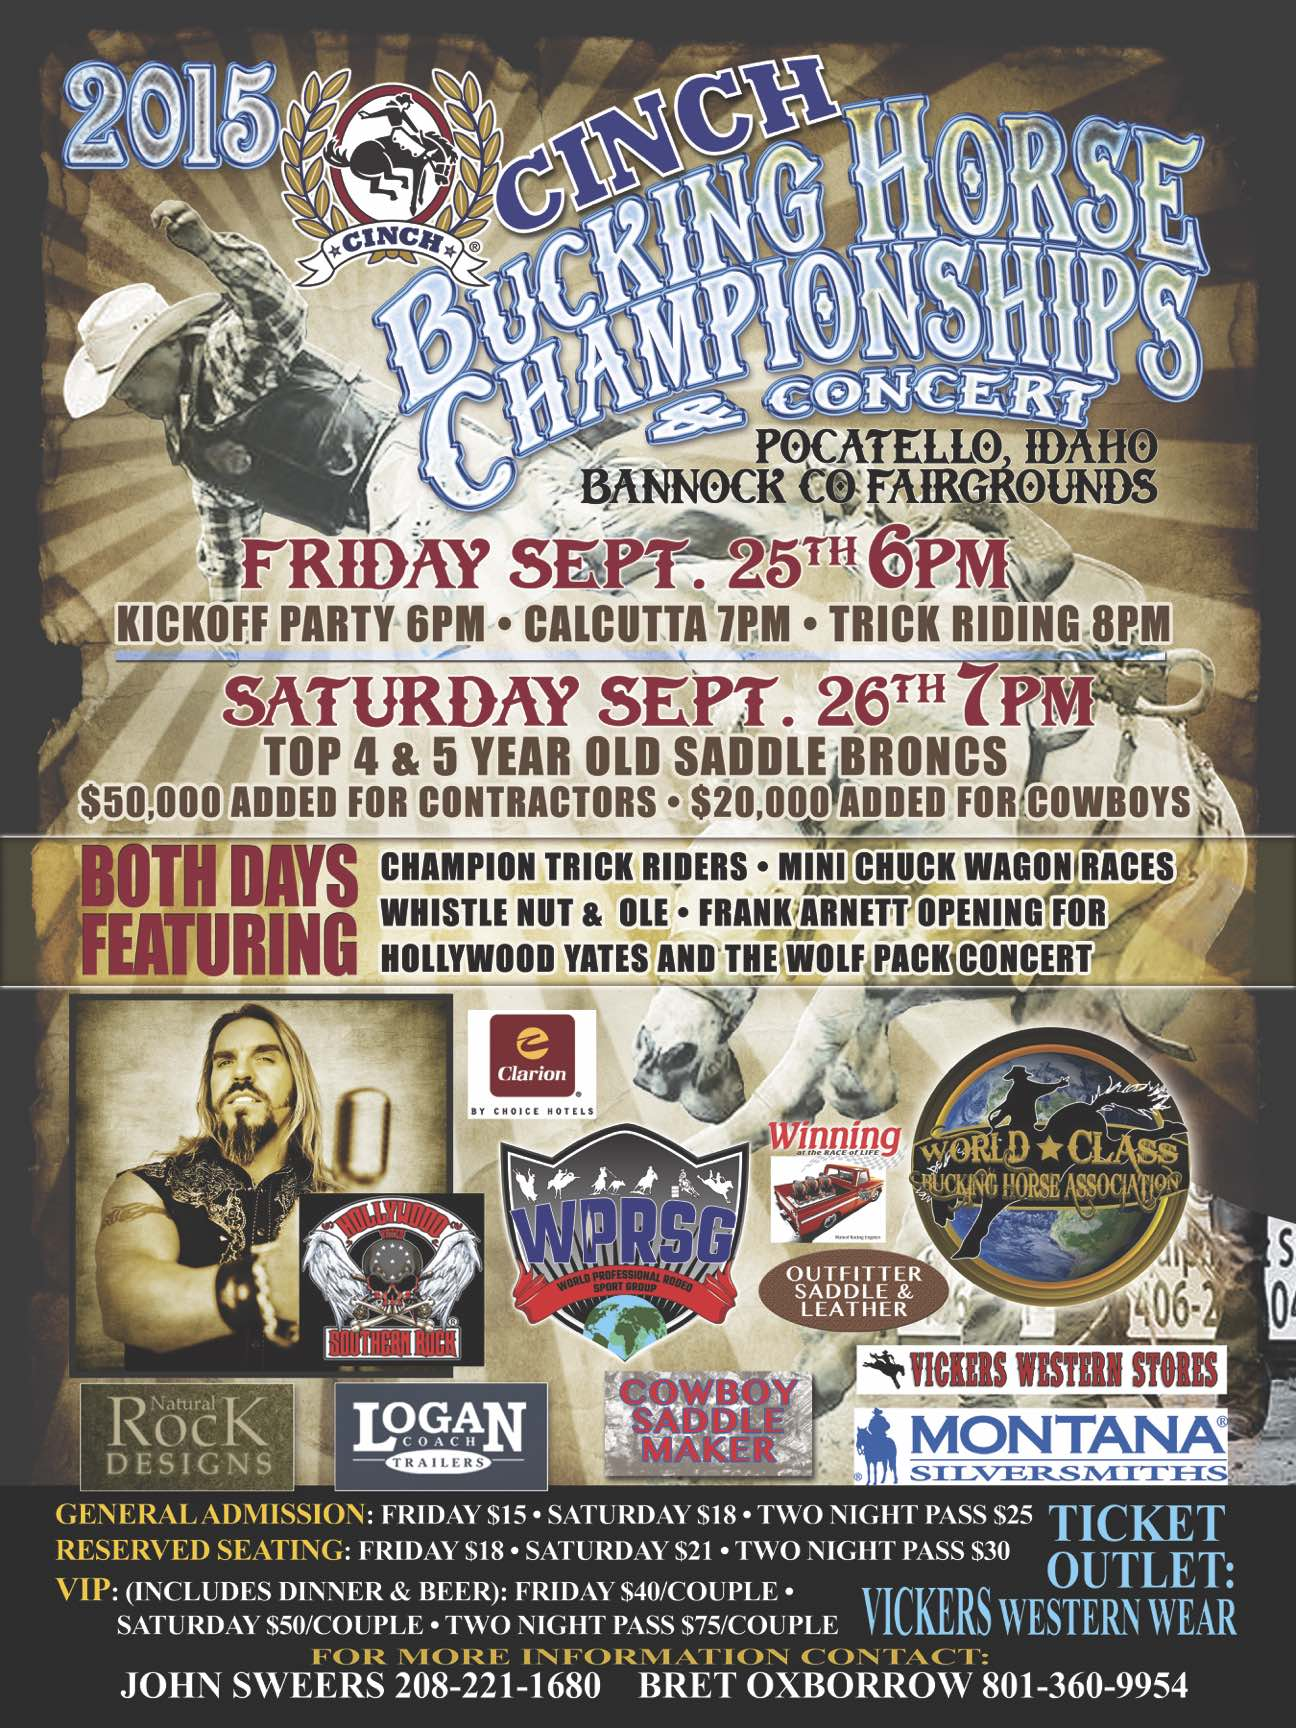 World Class Bucking Horse Finals Poster